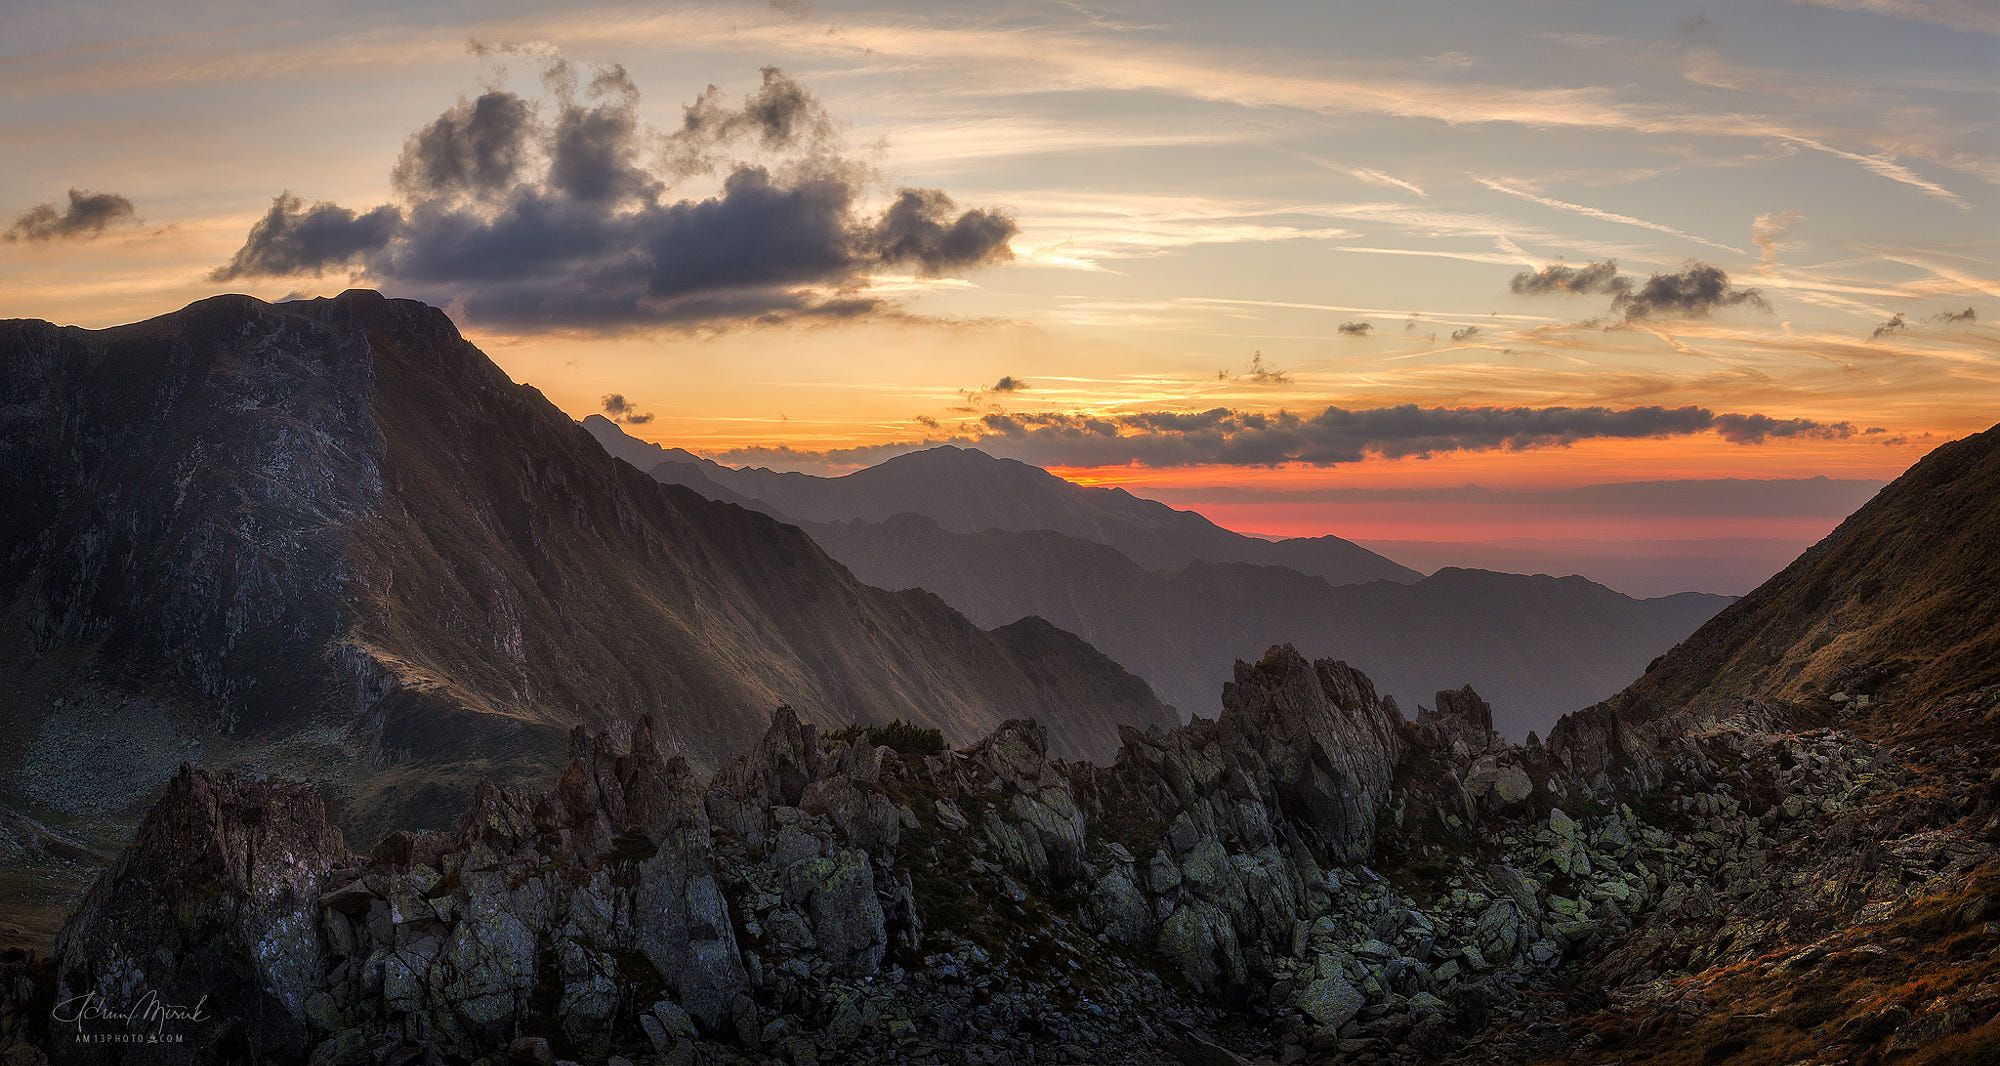 Sunset from Fagaras moutain, Romania